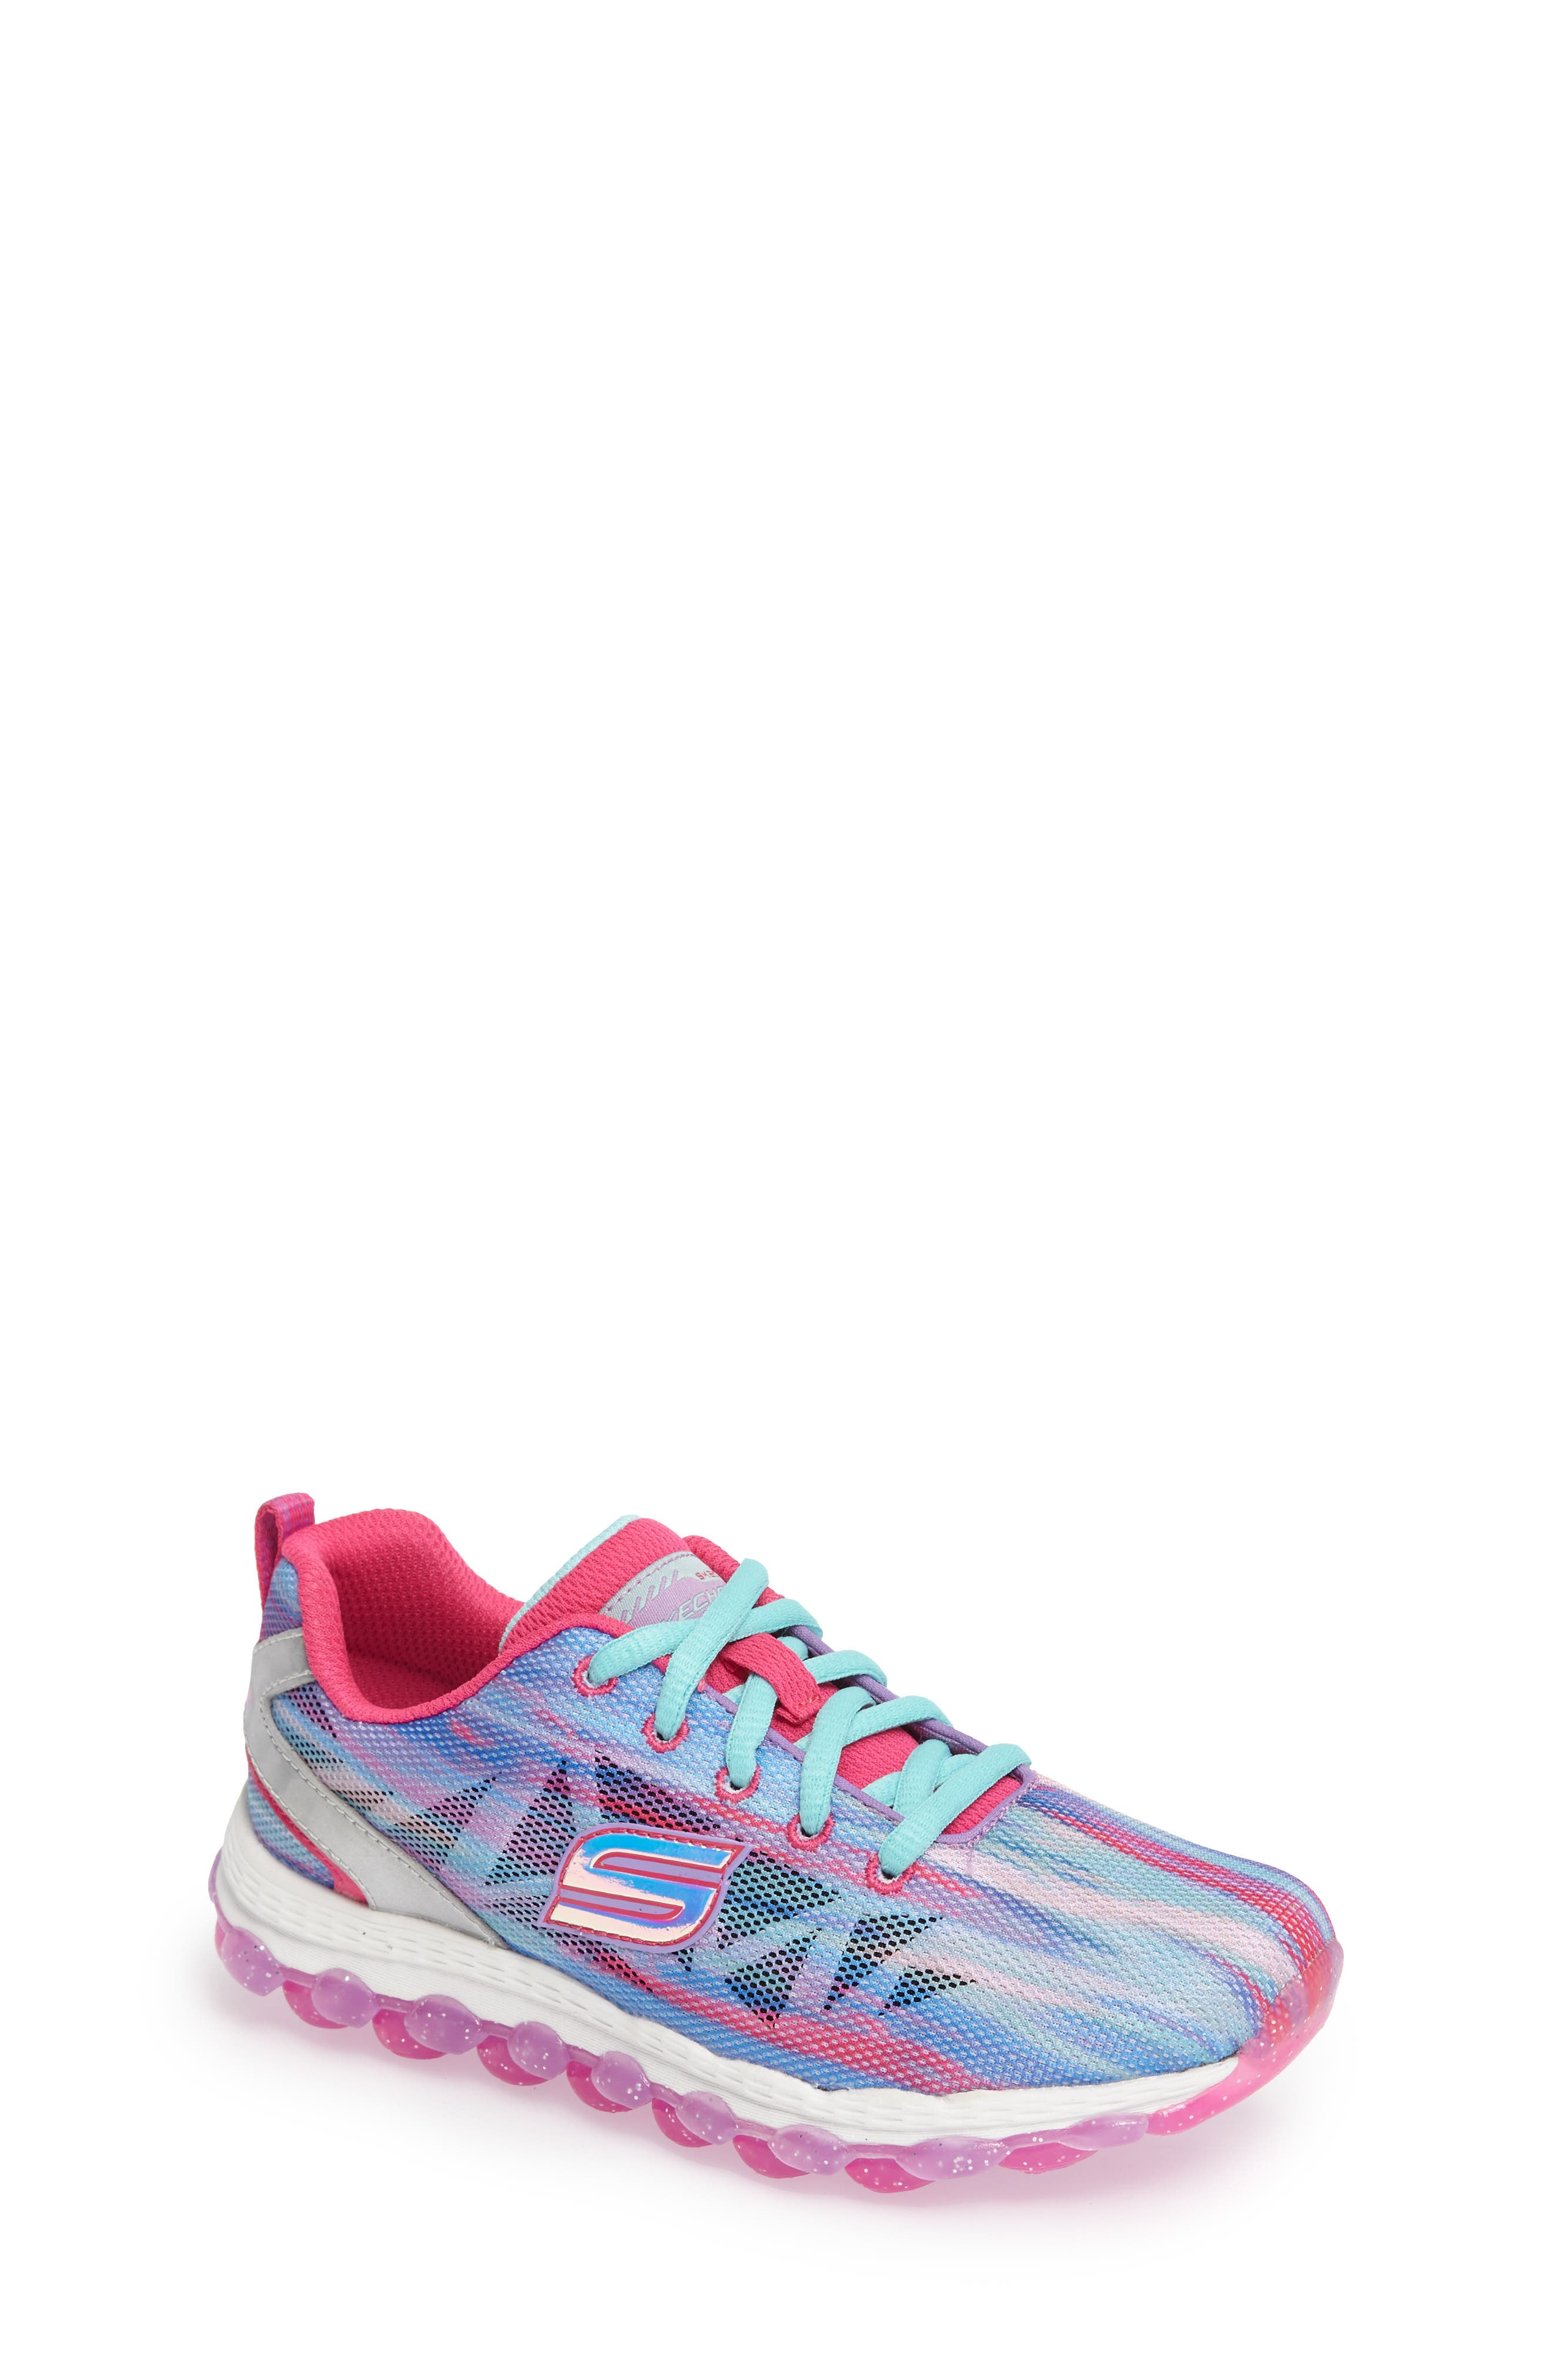 Skech-Air Ultra Sneaker,                             Main thumbnail 1, color,                             650